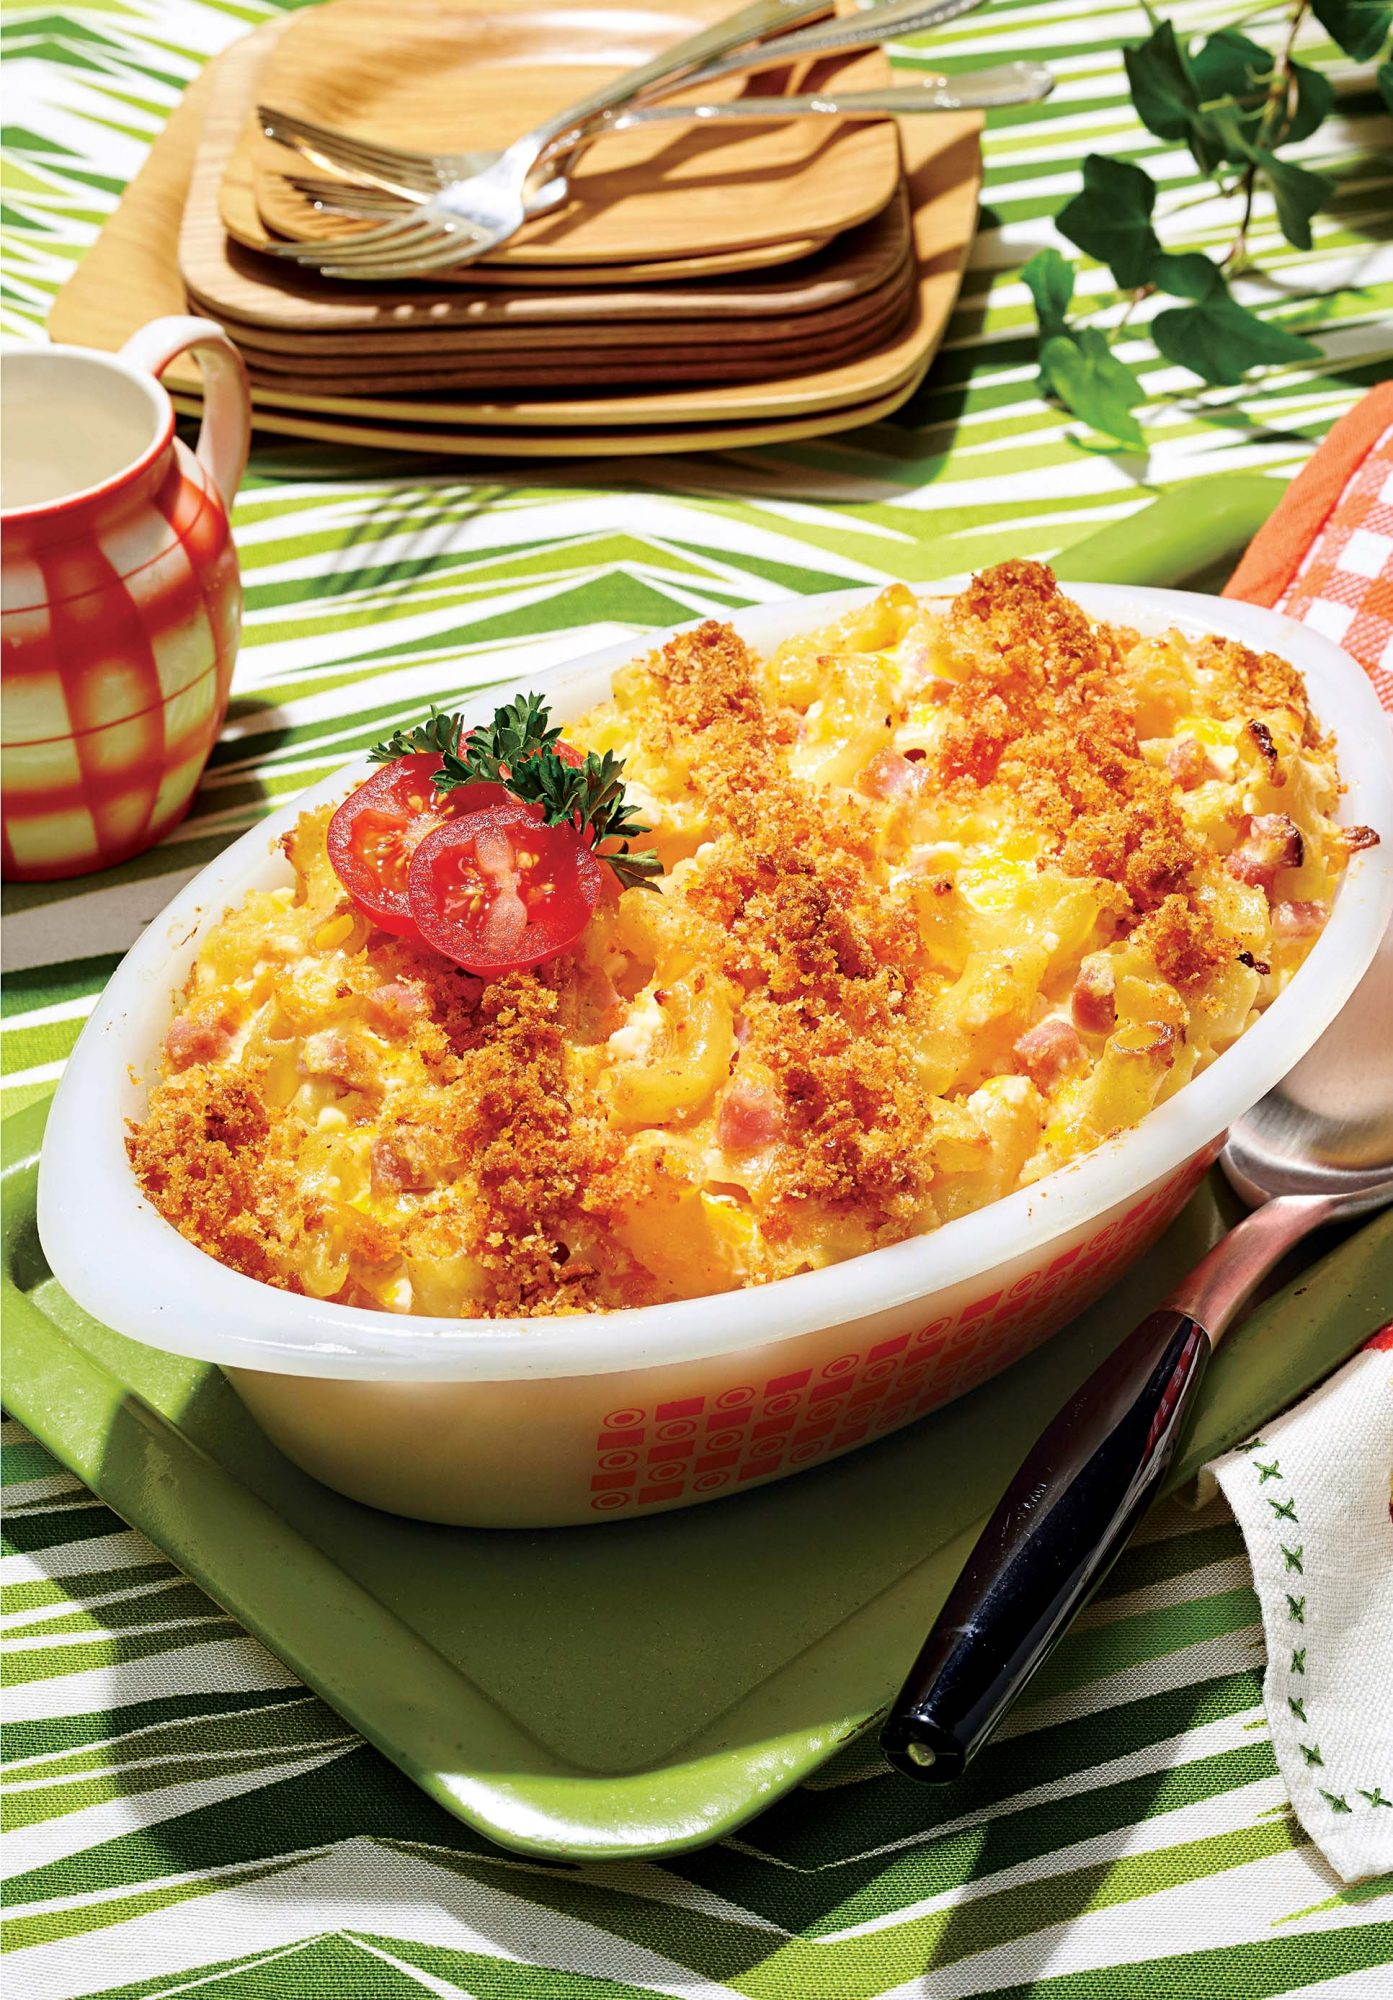 macaroni and cheese image